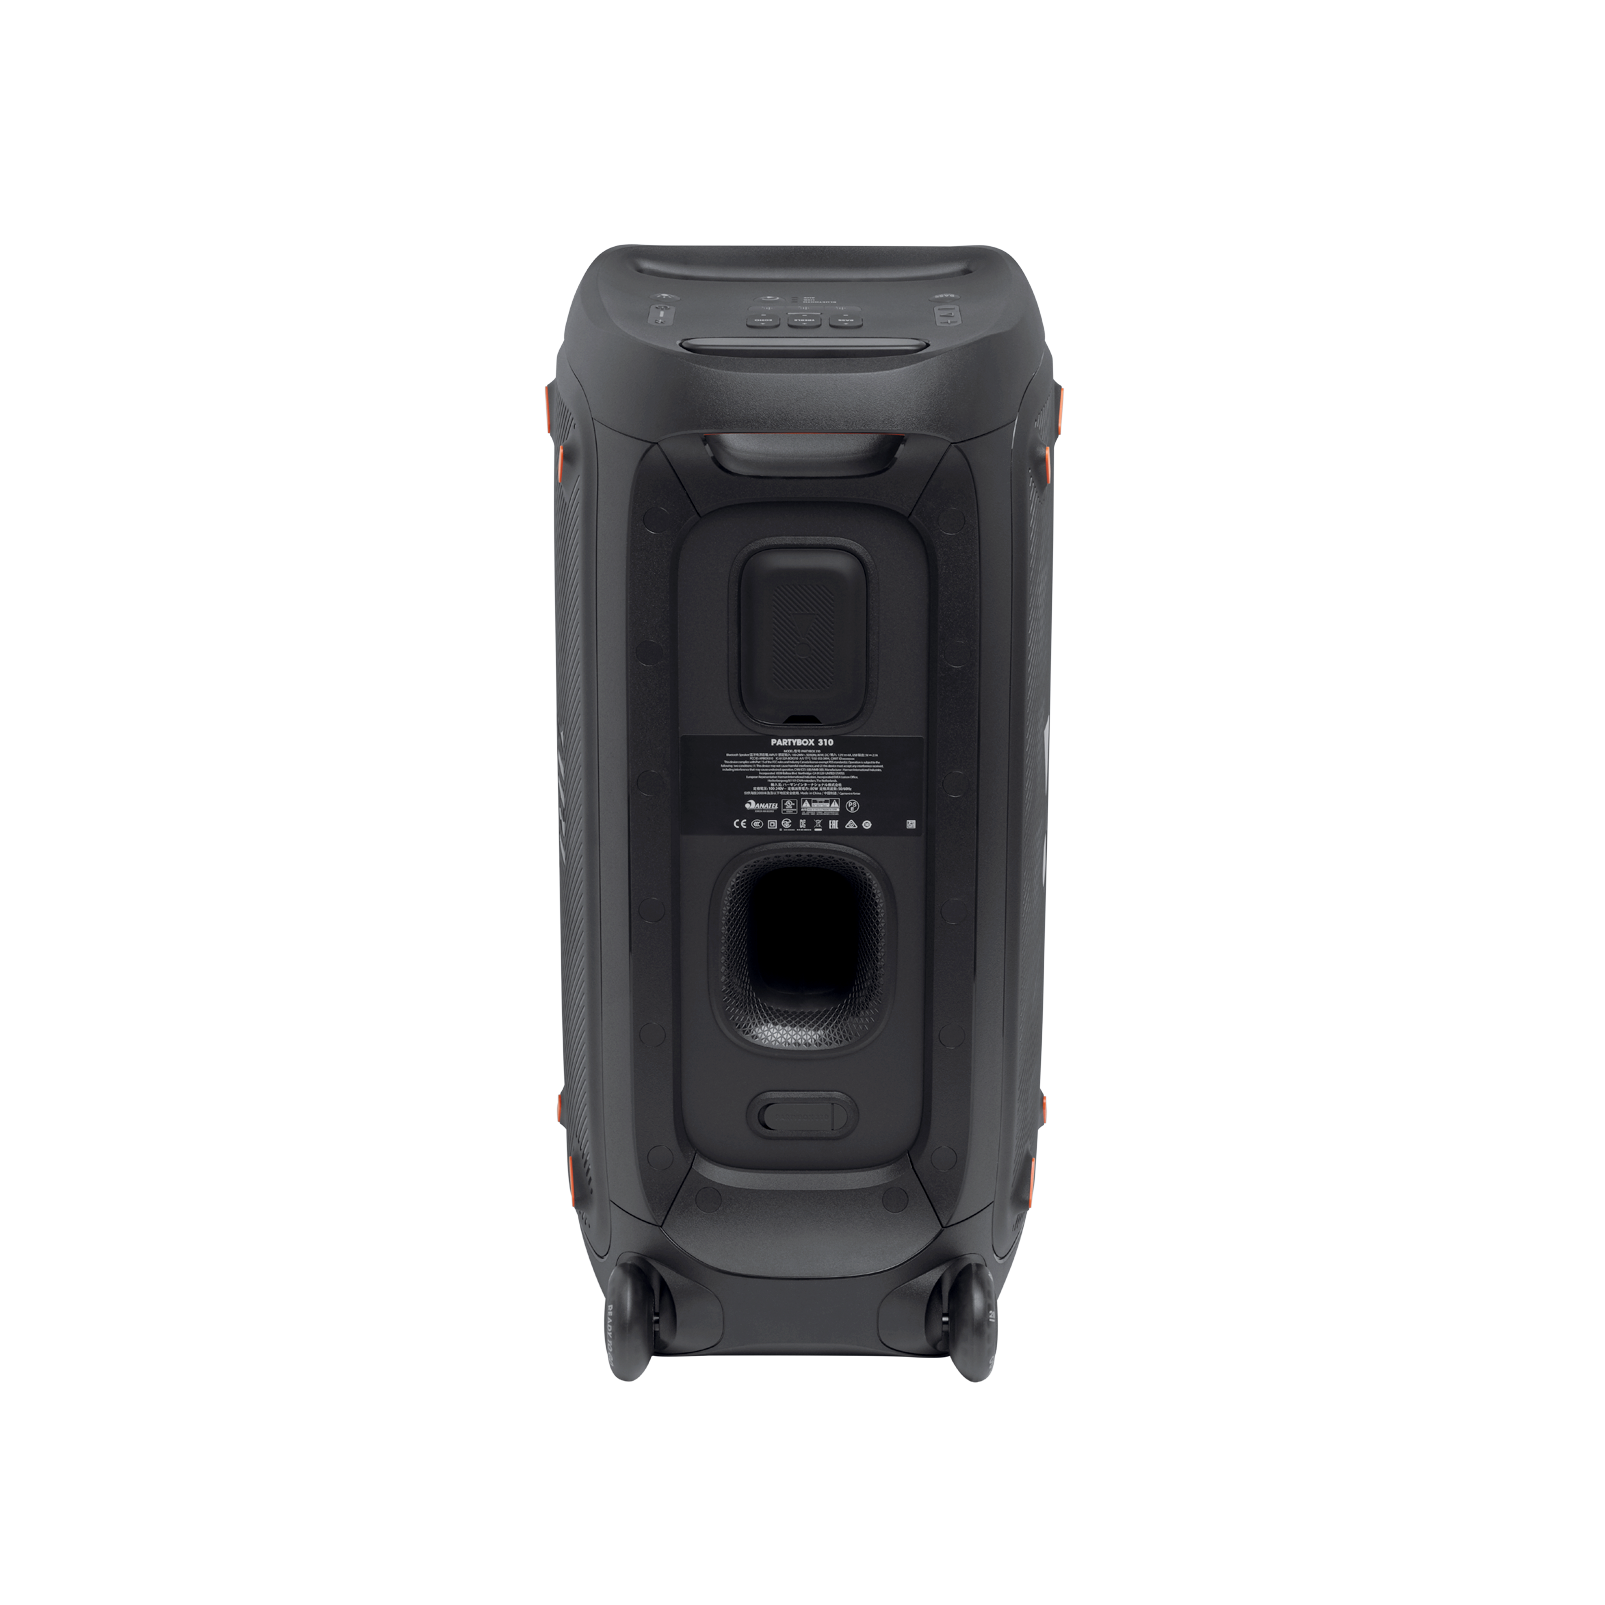 JBL Partybox 310 - Black - Portable party speaker with dazzling lights and powerful JBL Pro Sound - Back